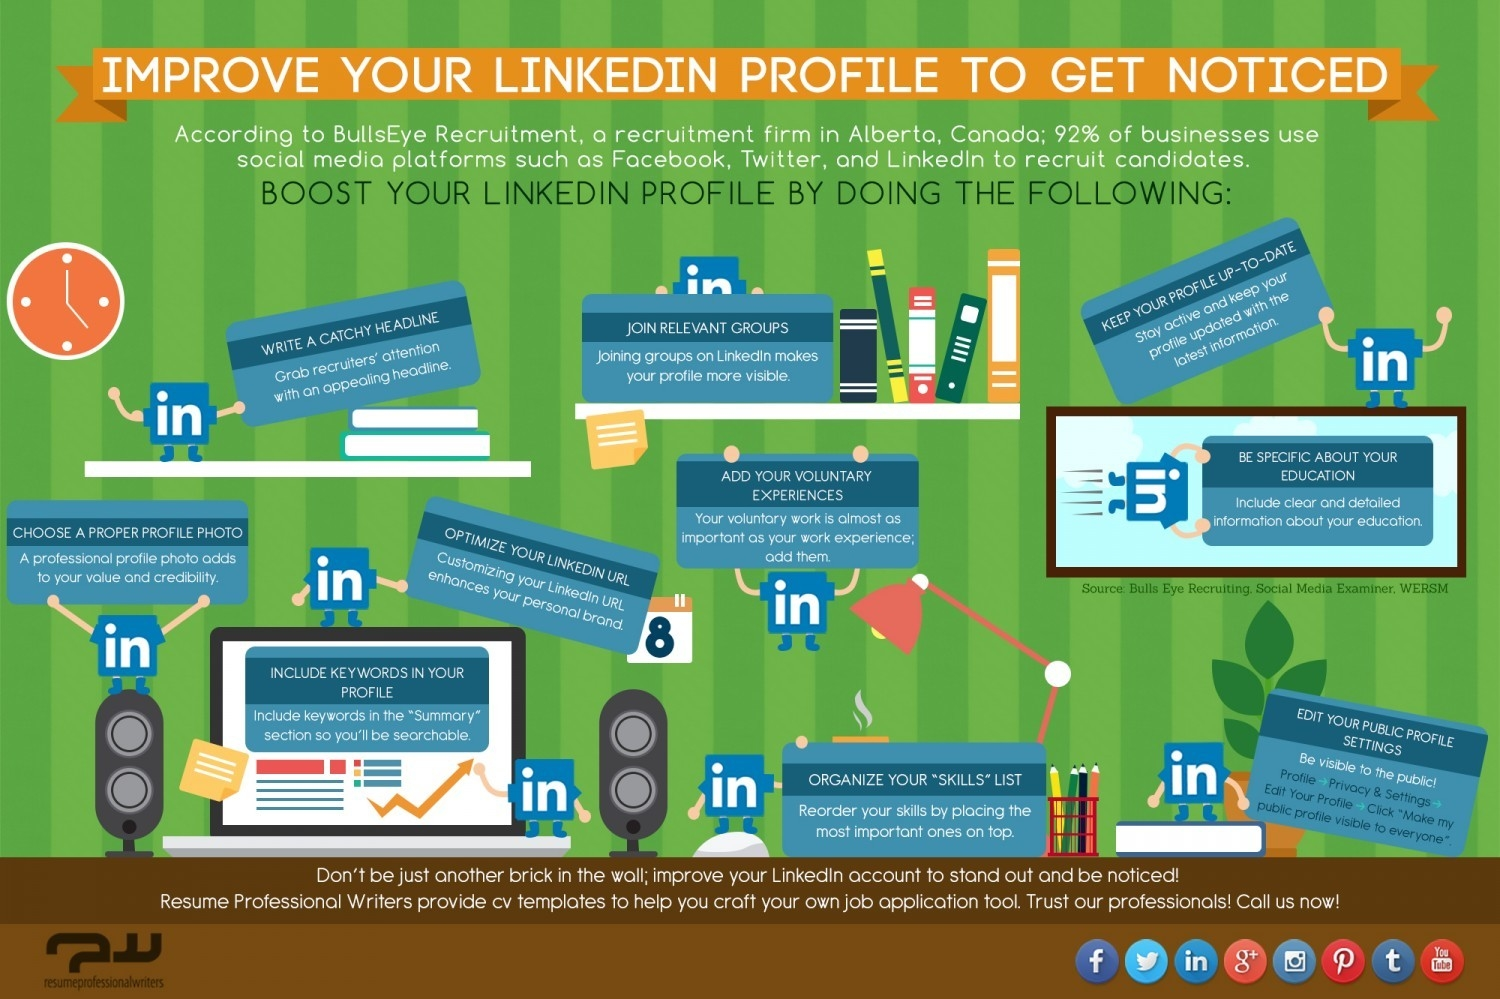 Improve Your LinkedIn Profile to Get Noticed [Infographic]